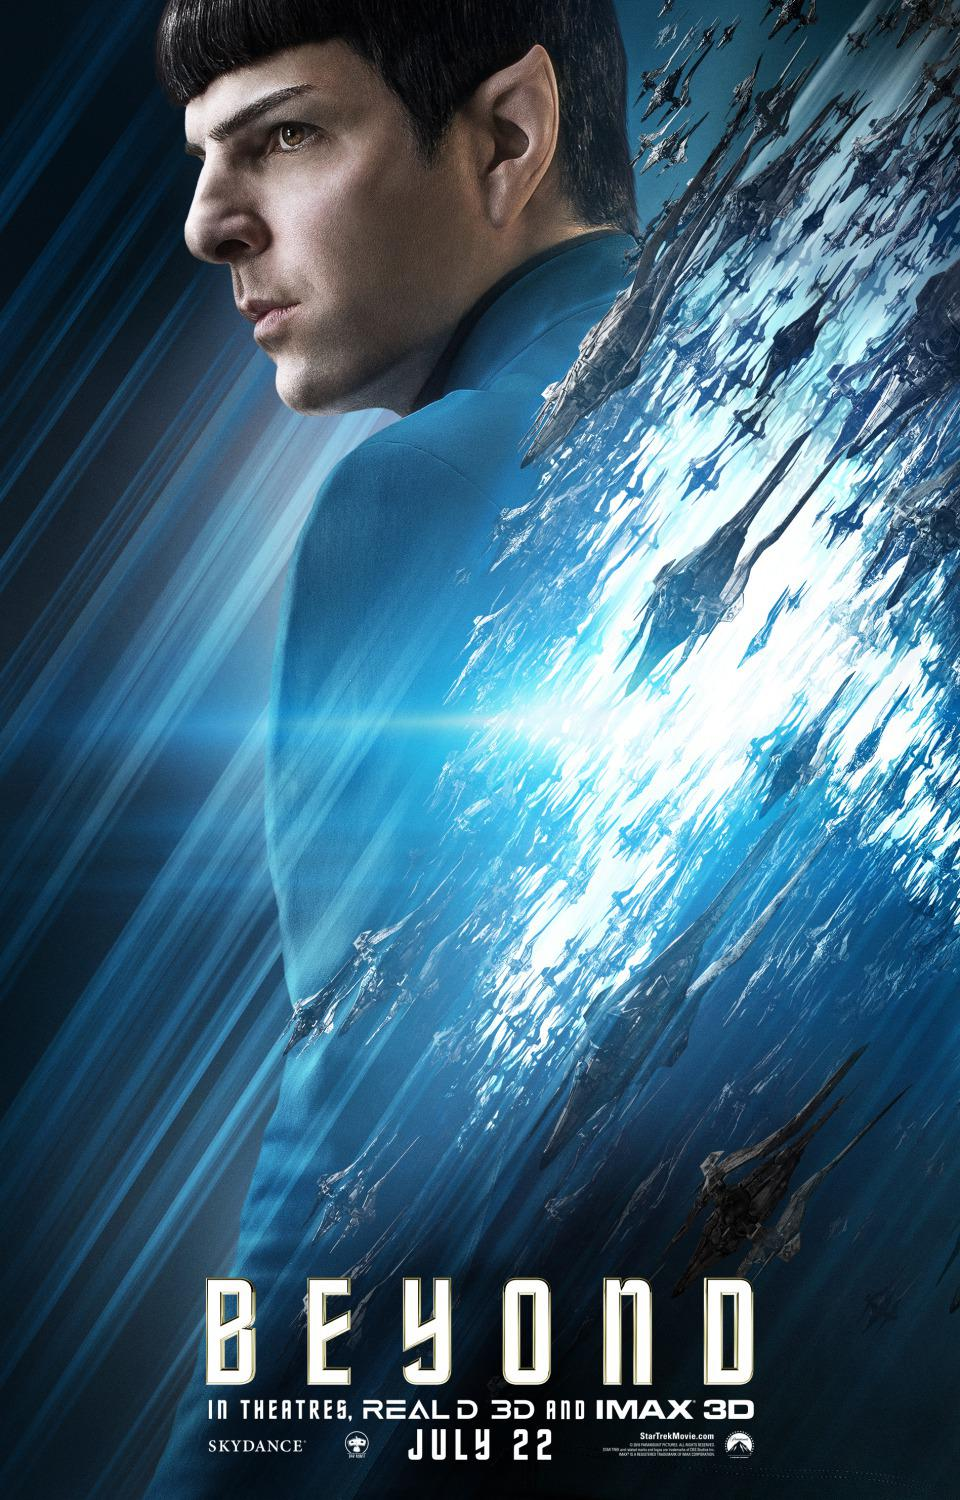 Film - Star Trek 13 - Beyond - poster - Zachary Quinto - Spock